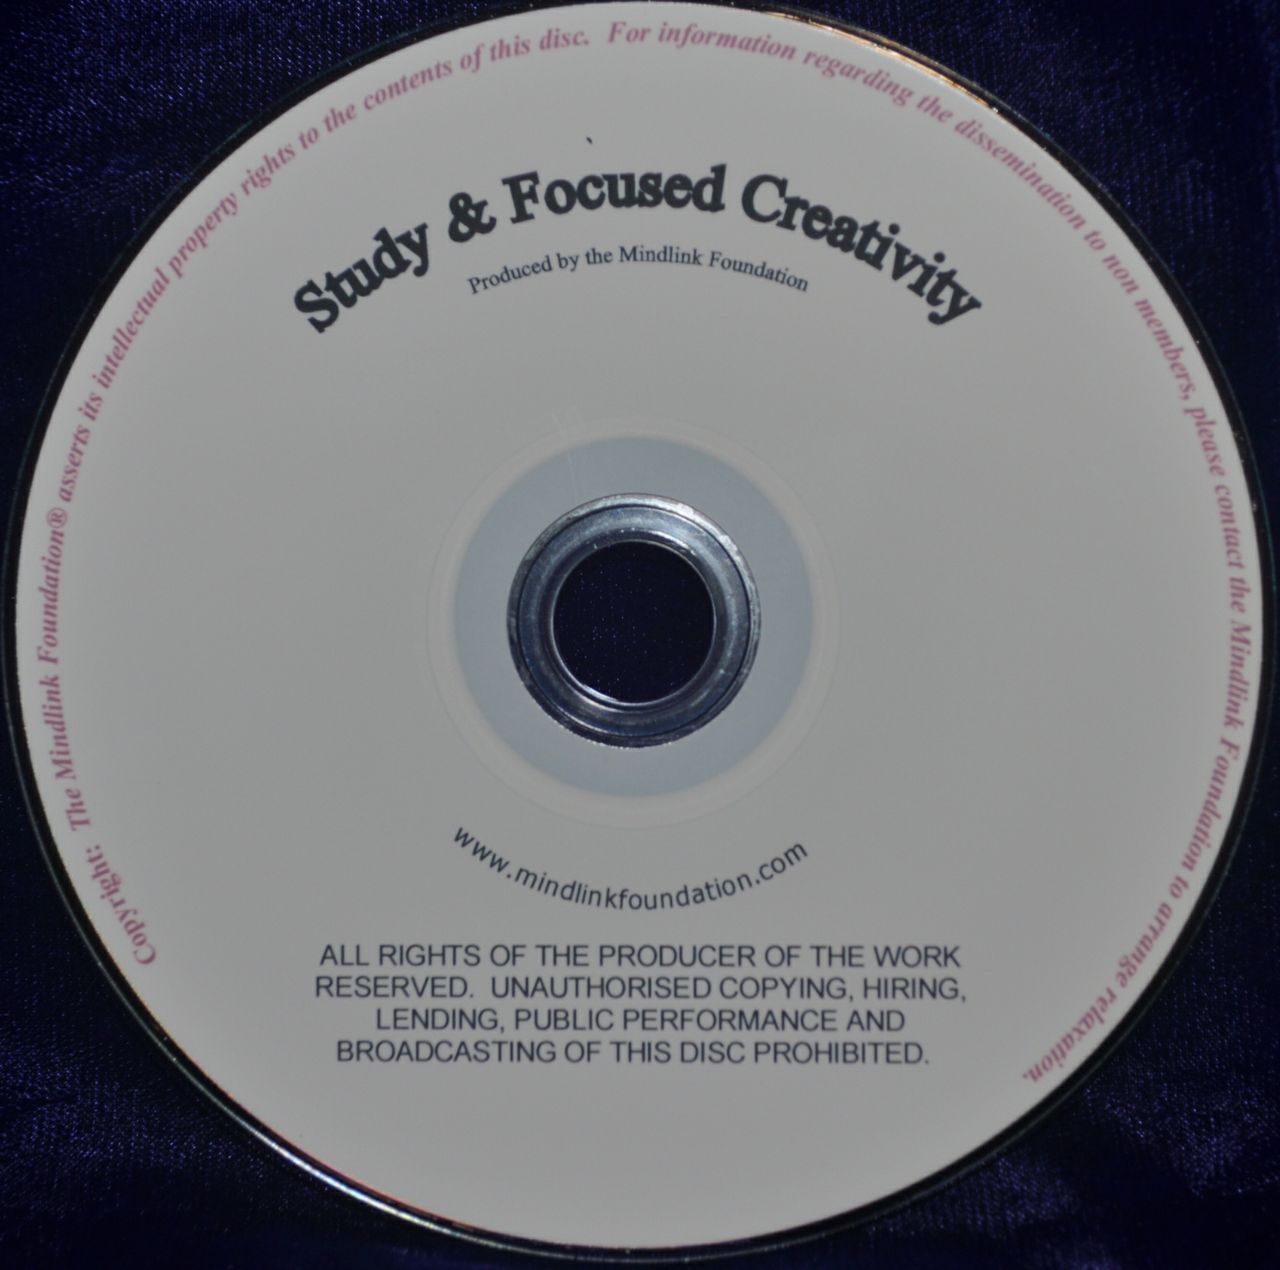 Study & Focused Creativity with no background music